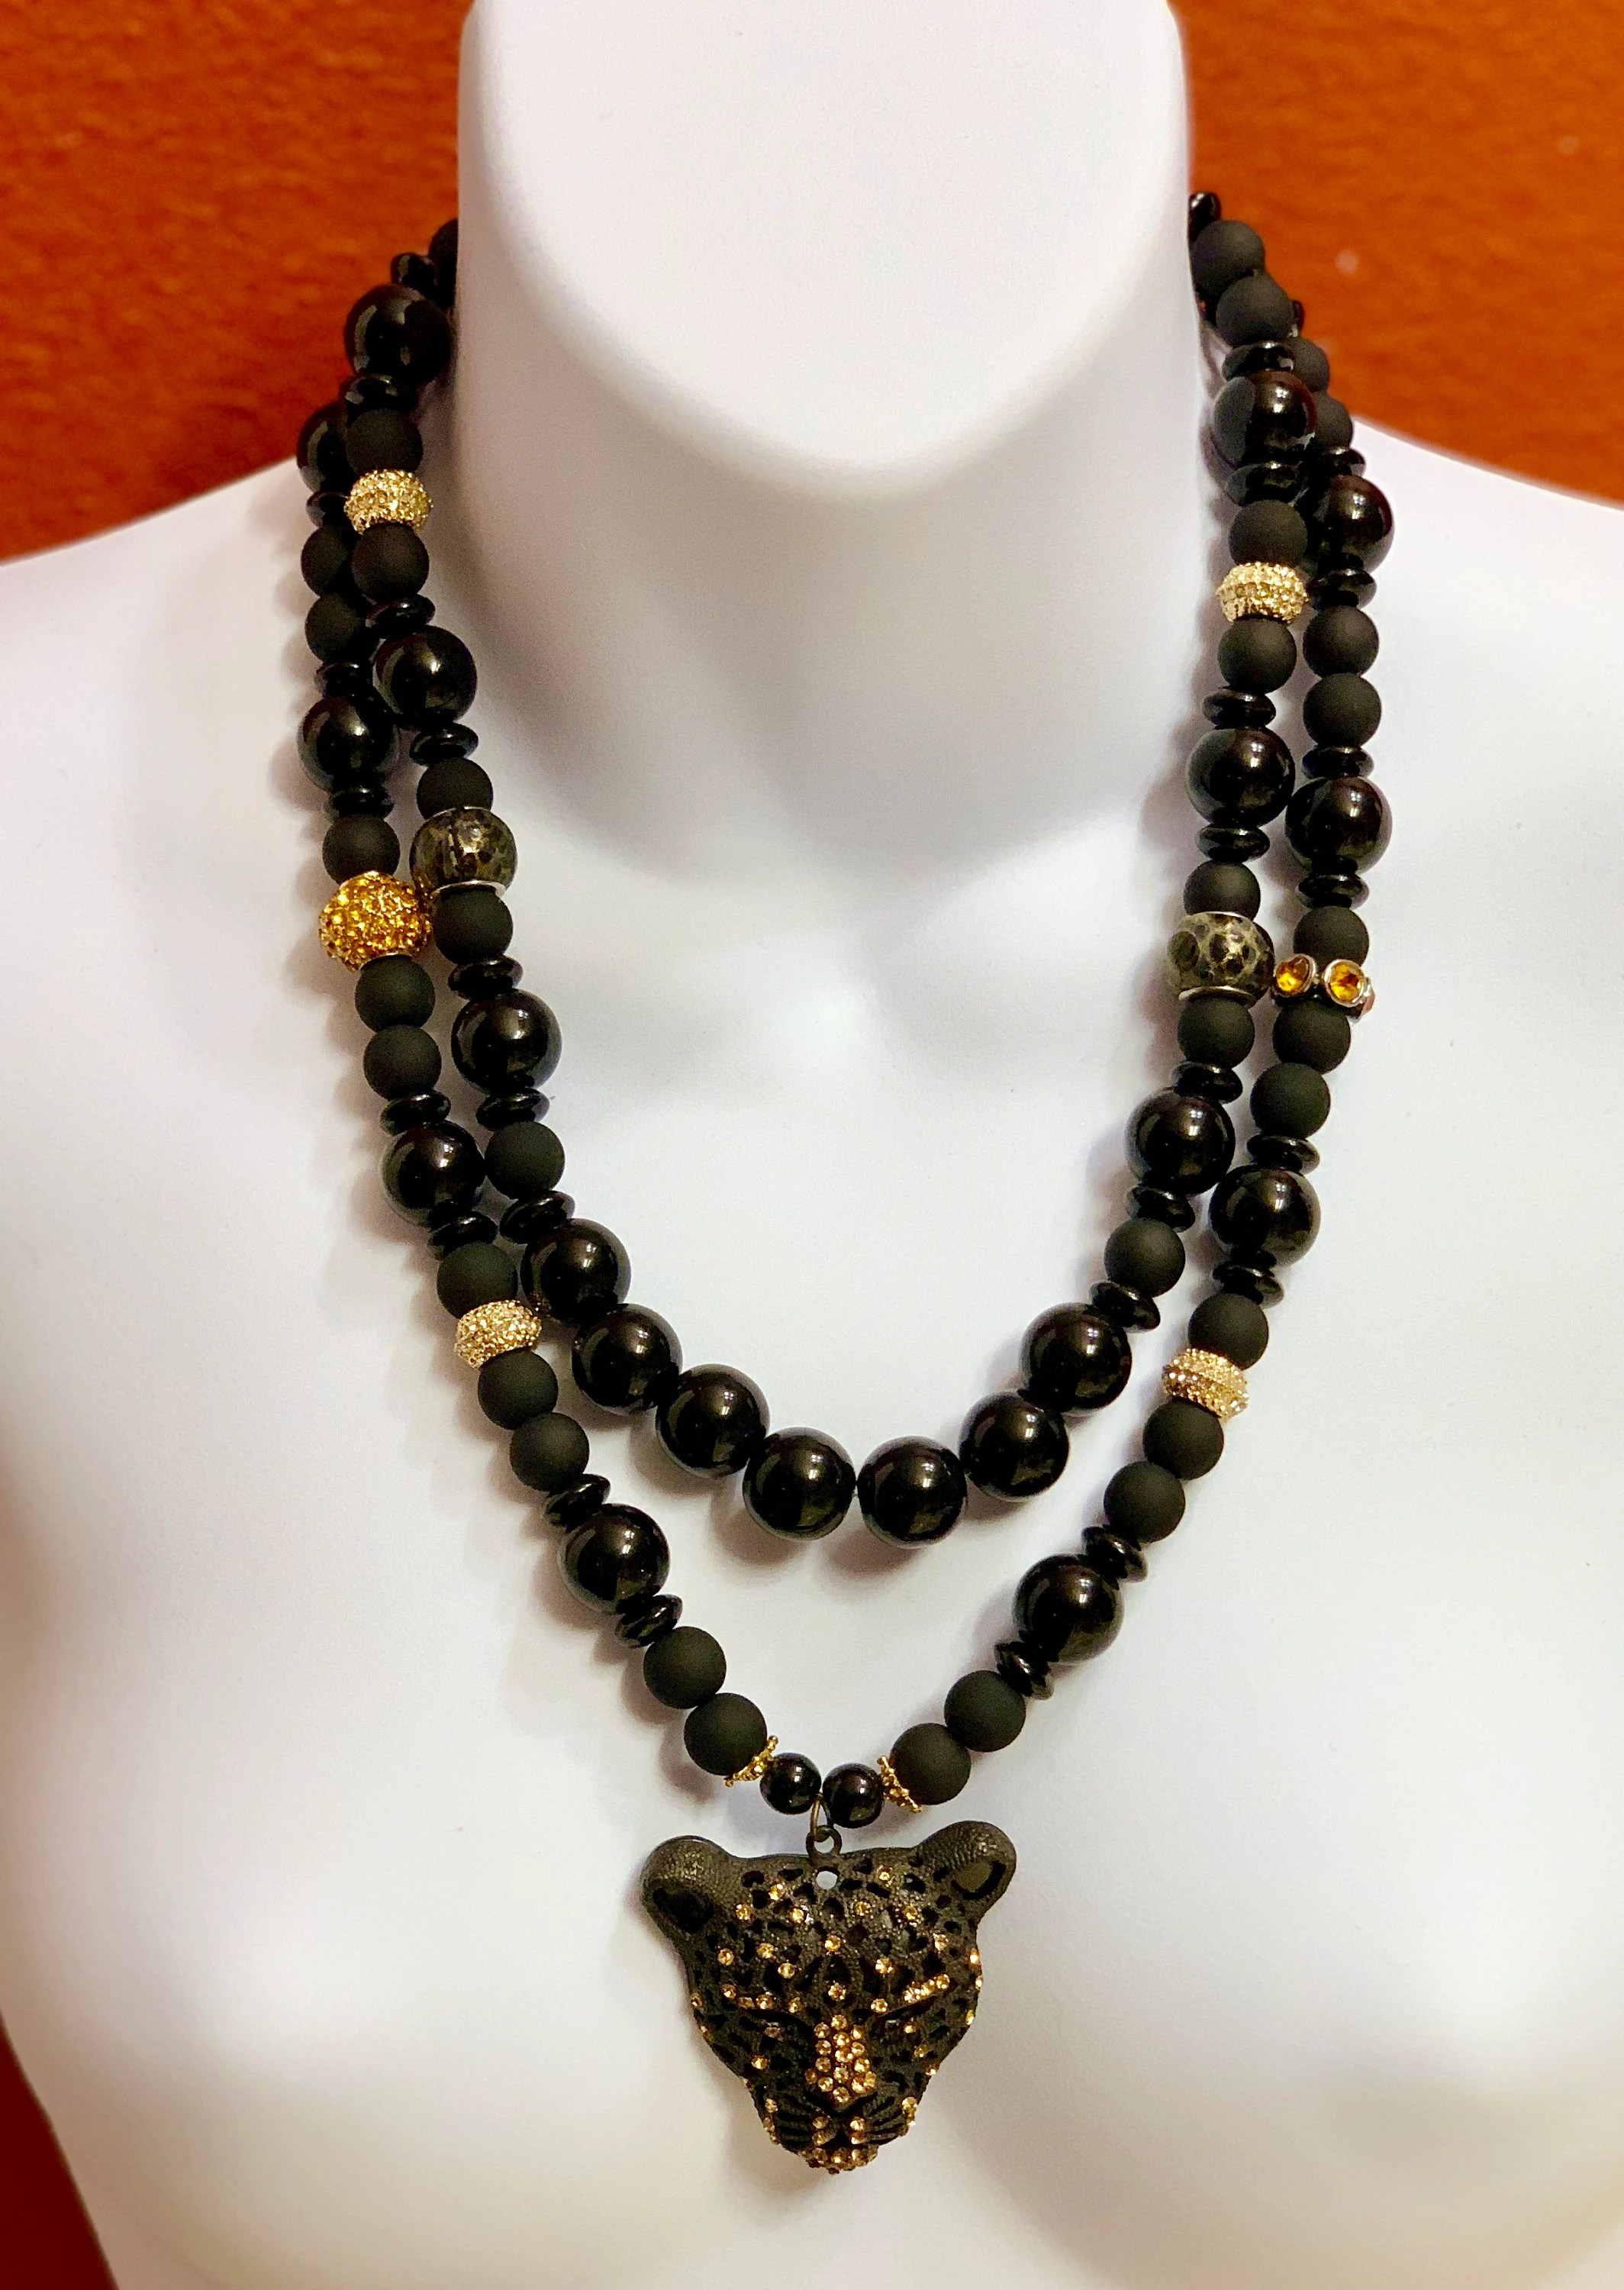 Regal Design La'faye Regal Design By Dana, Black Jaguar Two-strand Necklace Collection 2019 # 1